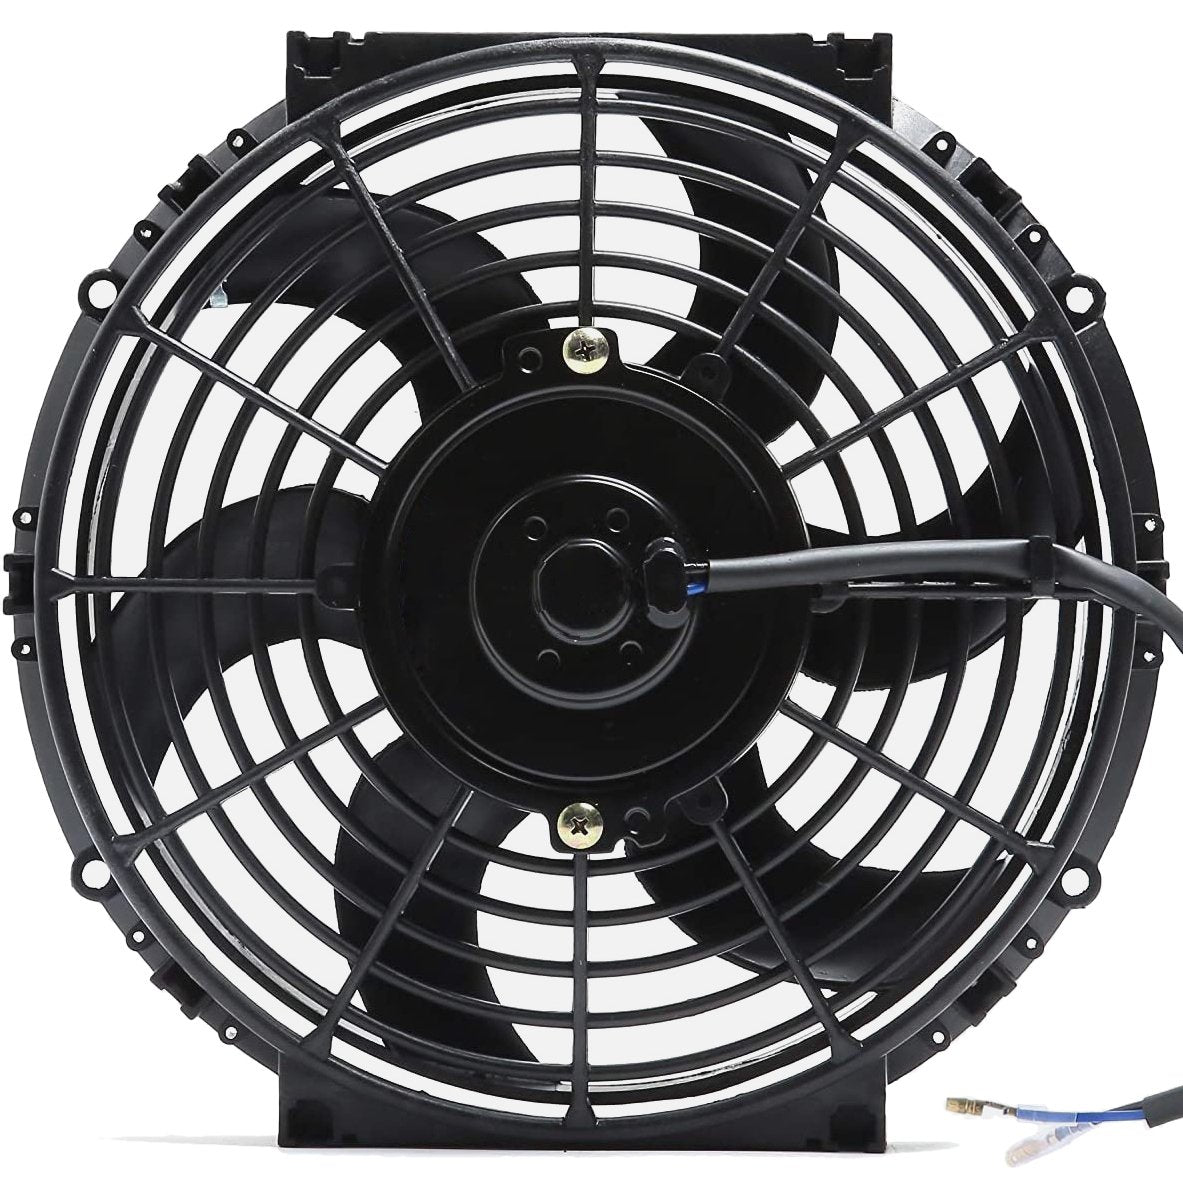 "Dual 10"" Inch Electric Fans 12 Volt Engine Radiator Cooling Upgraded 90 Watt Motor High CFM-Dual Electric Fans-American Volt-American Volt"